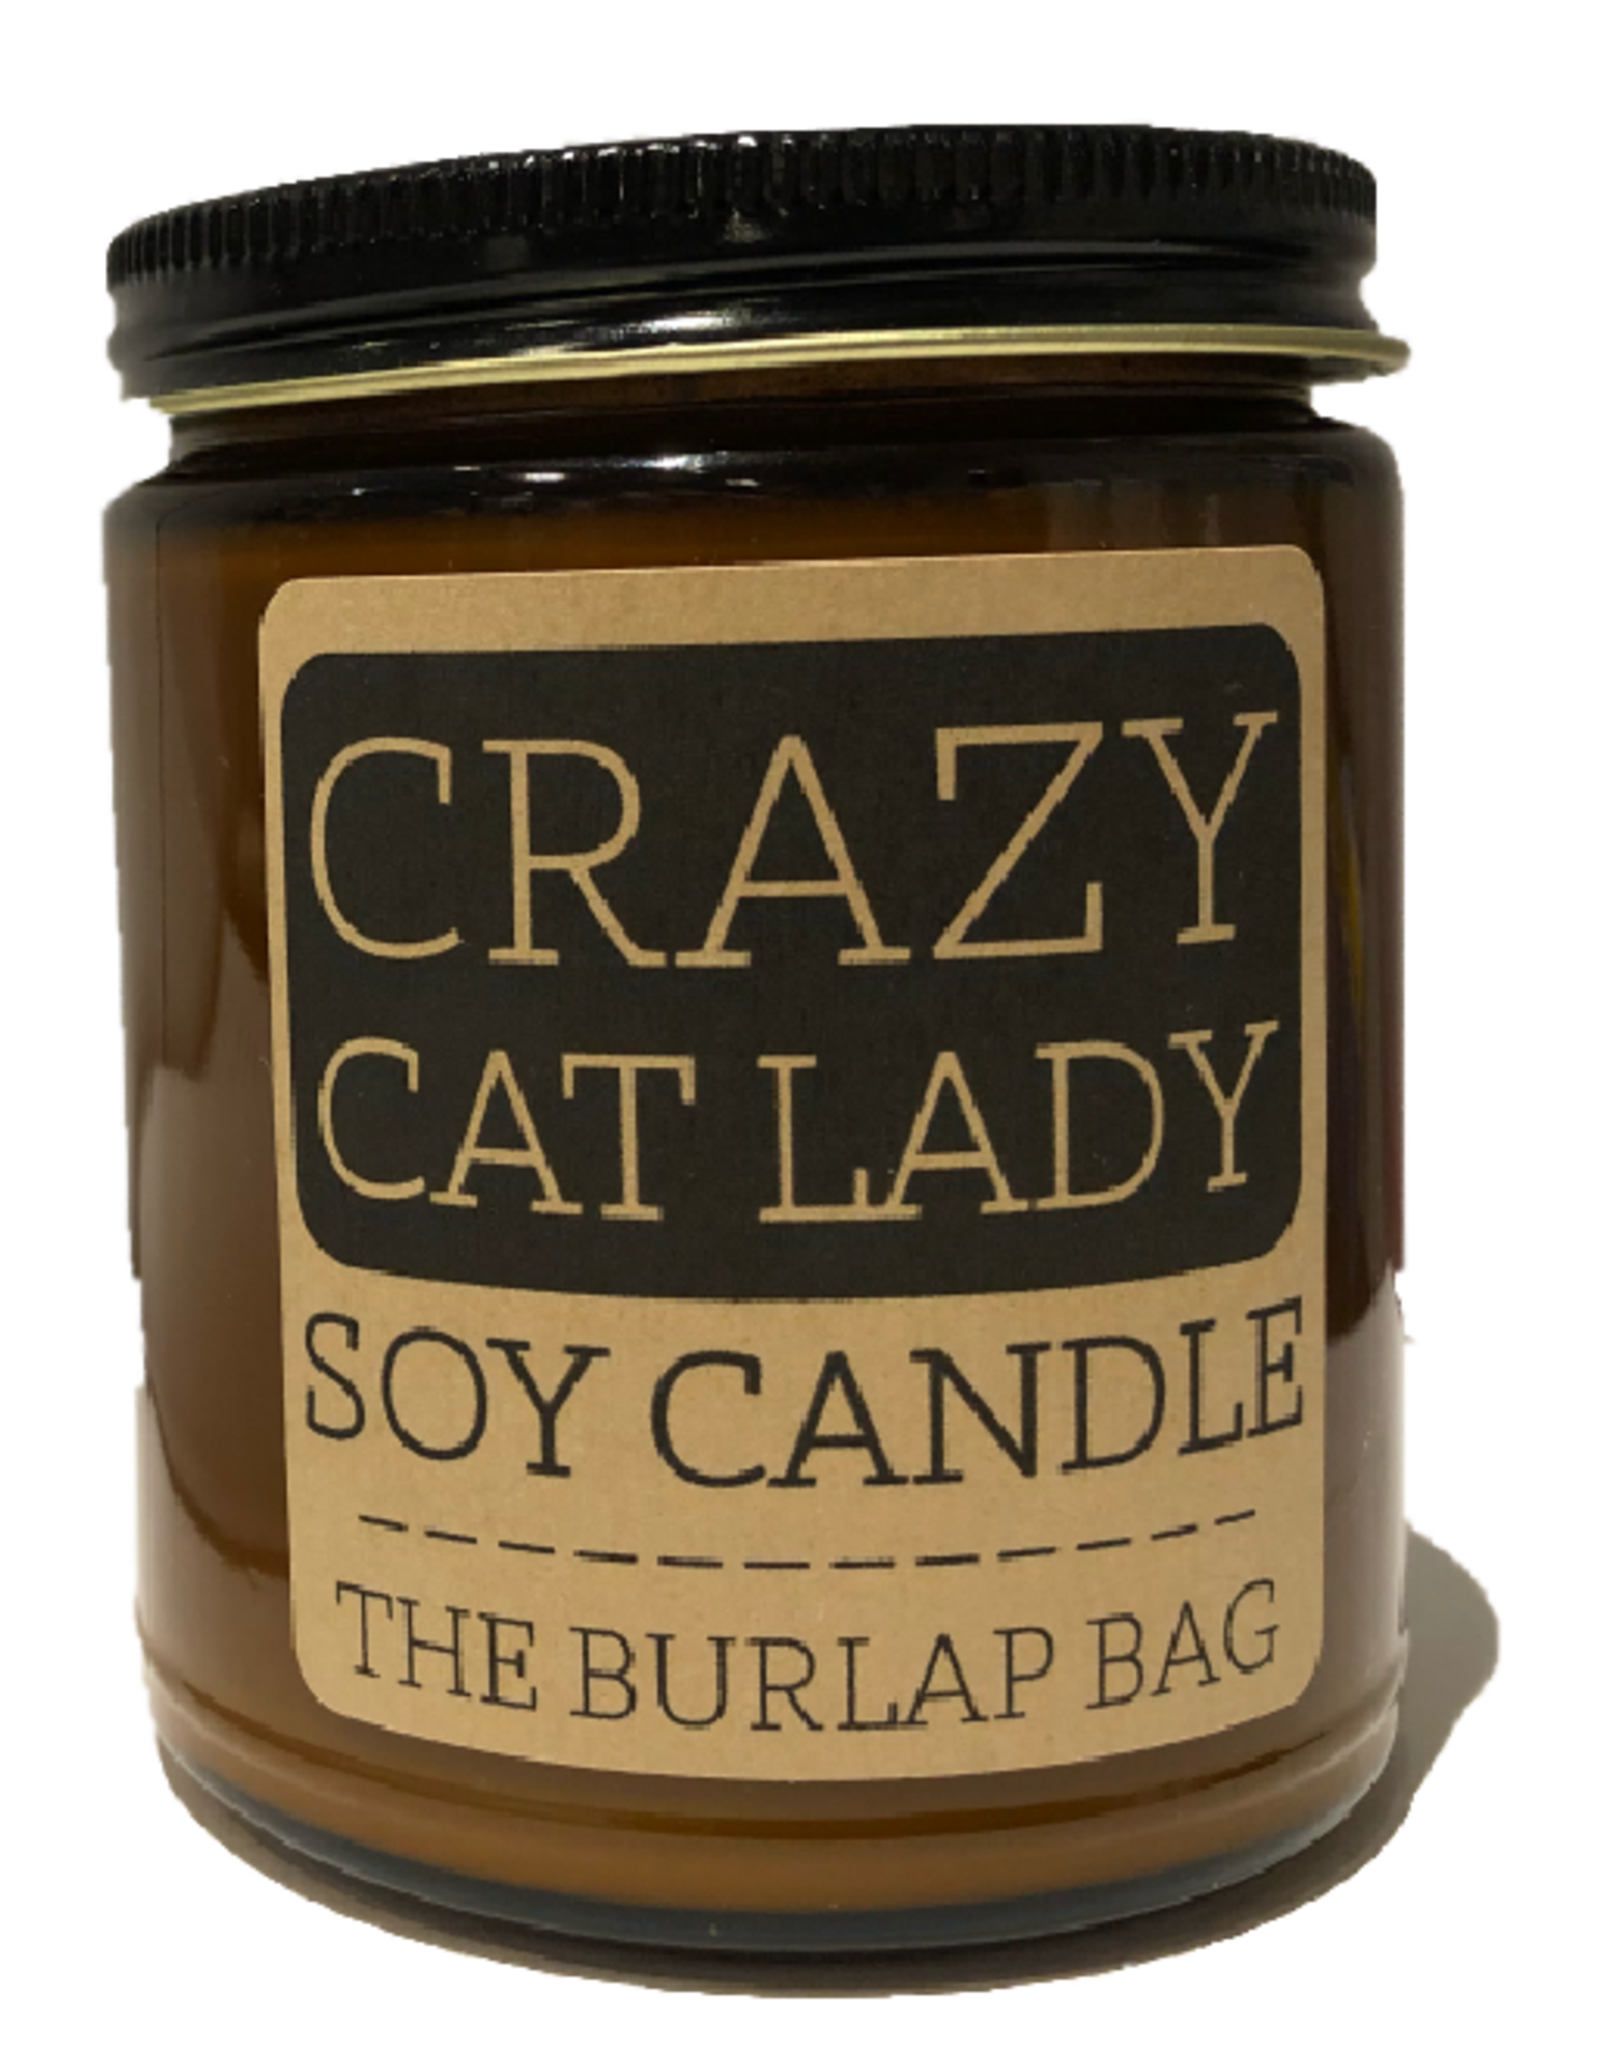 Candle - Crazy Cat Lady